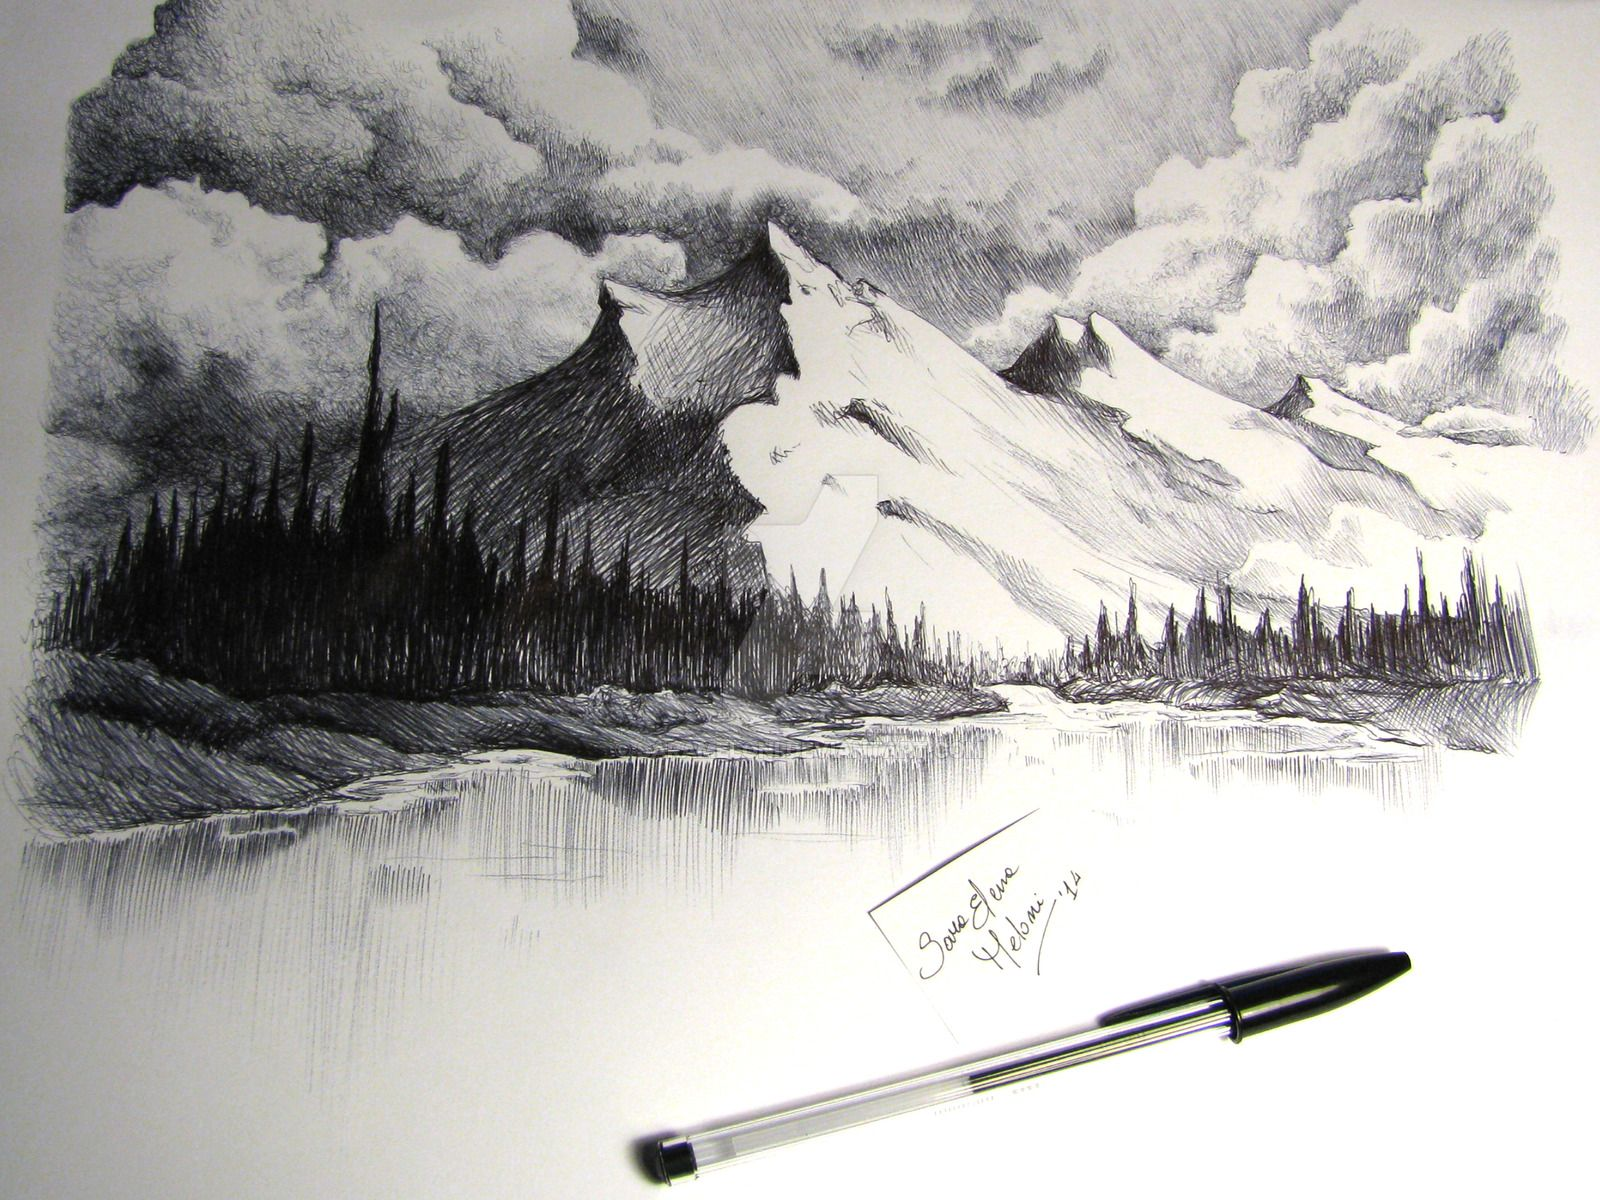 royalty free download Drawing snow mountain. Image result for how